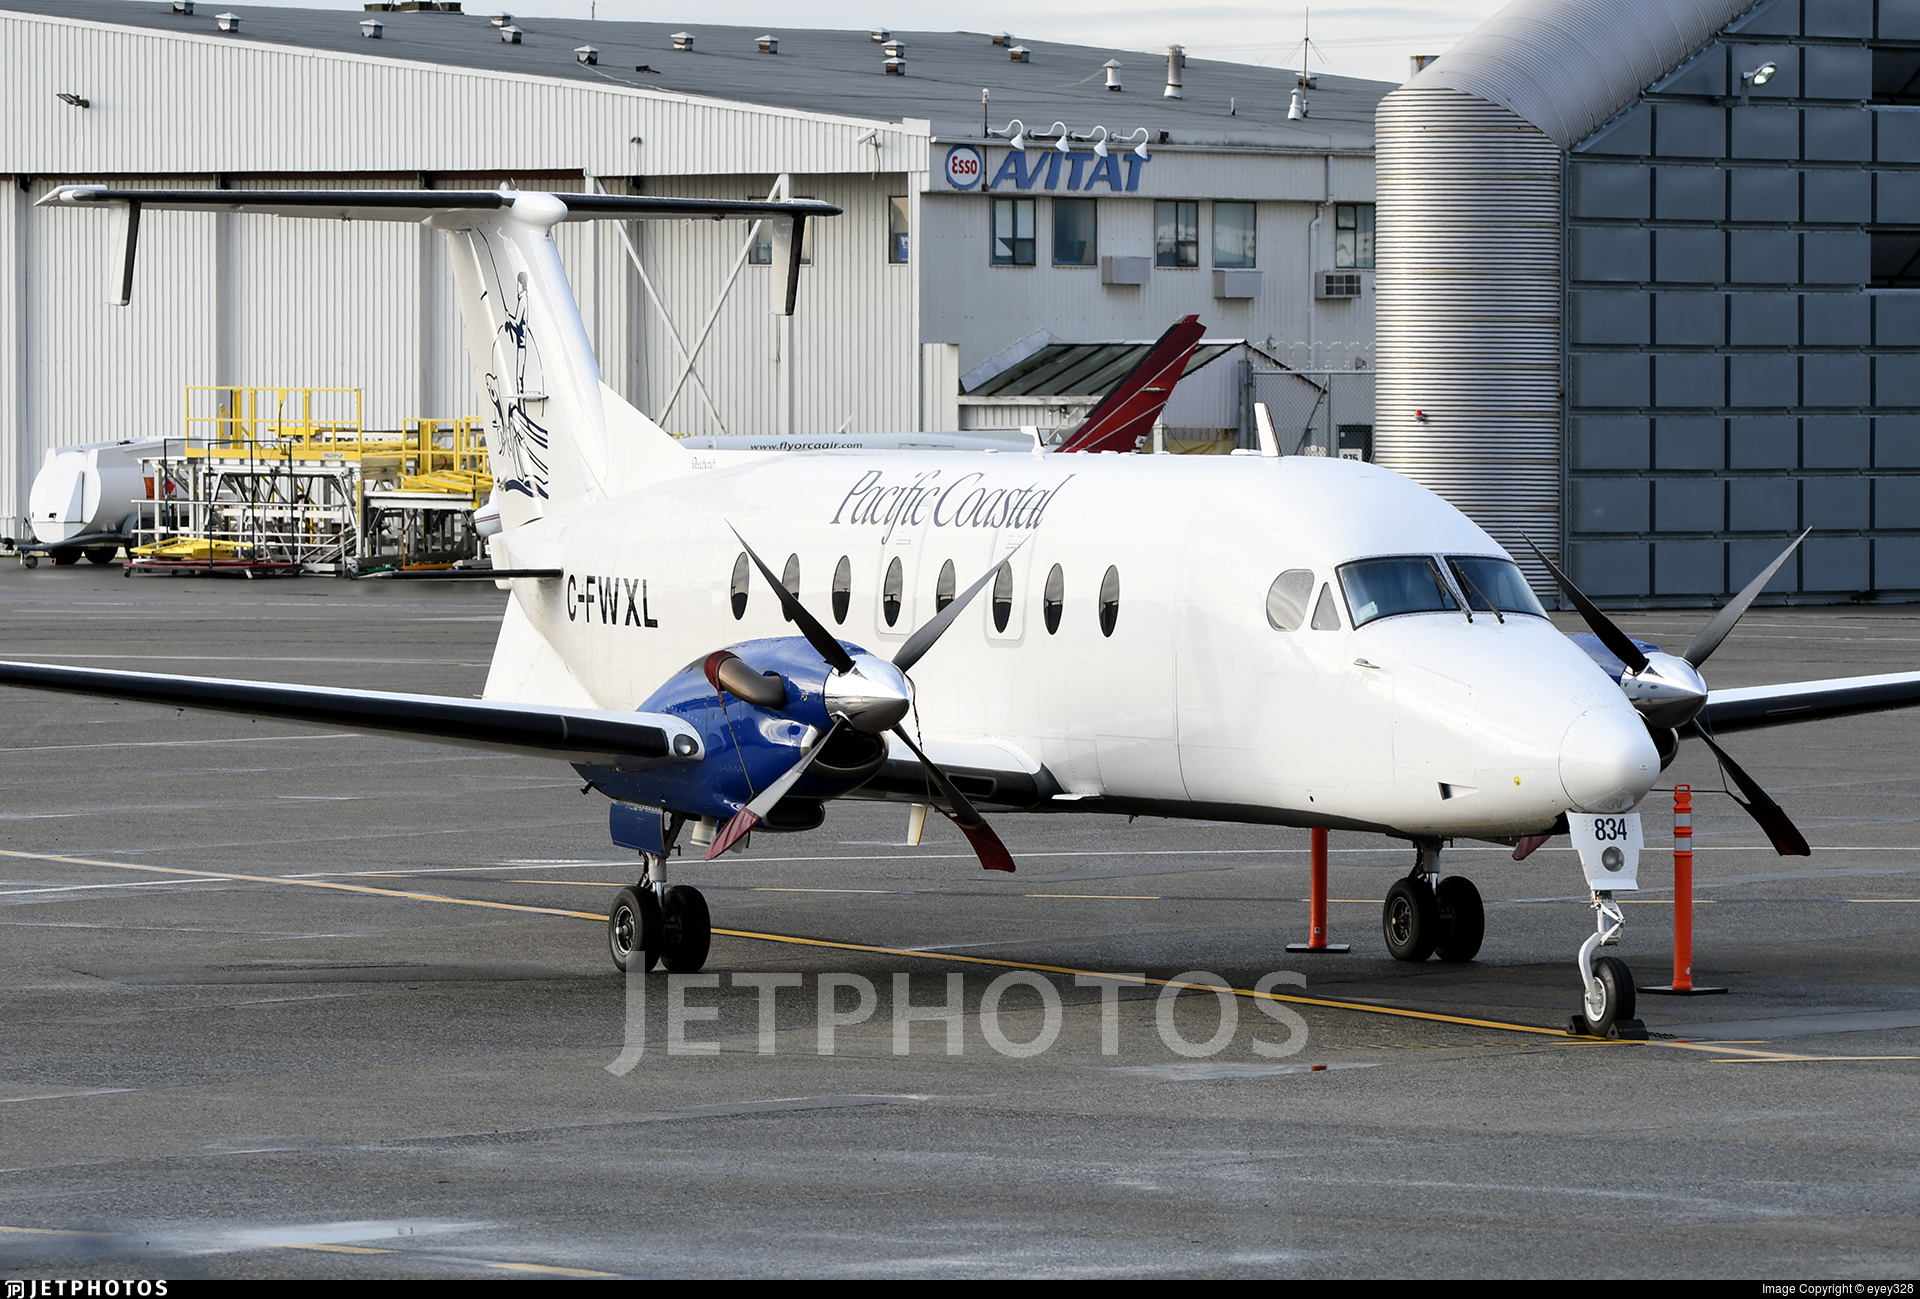 C-FWXL - Beech 1900D - Pacific Coastal Airlines